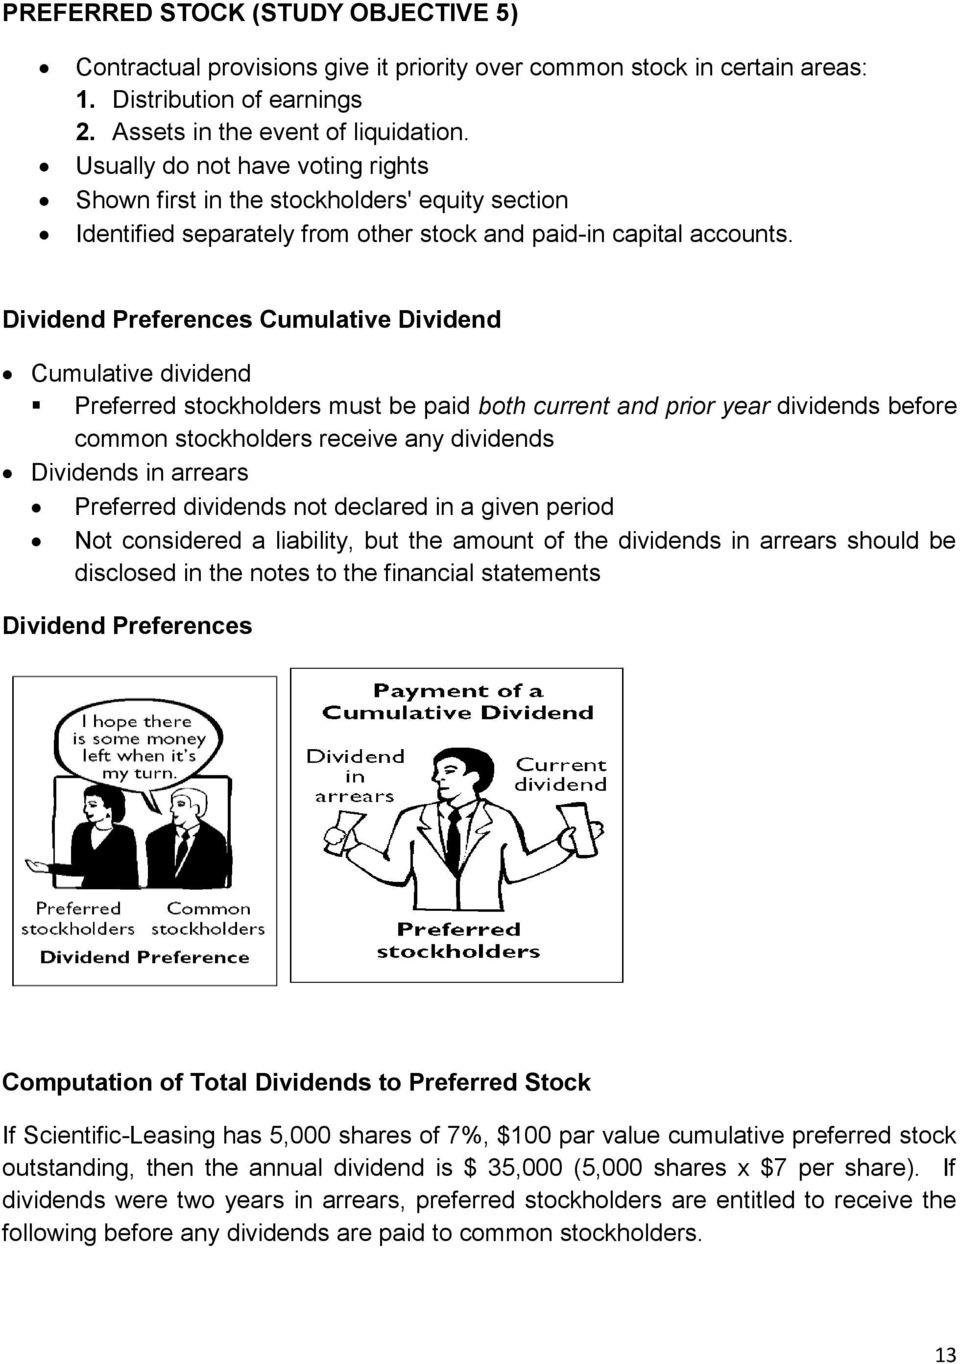 Dividend Preferences Cumulative Dividend Cumulative dividend Preferred stockholders must be paid both current and prior year dividends before common stockholders receive any dividends Dividends in